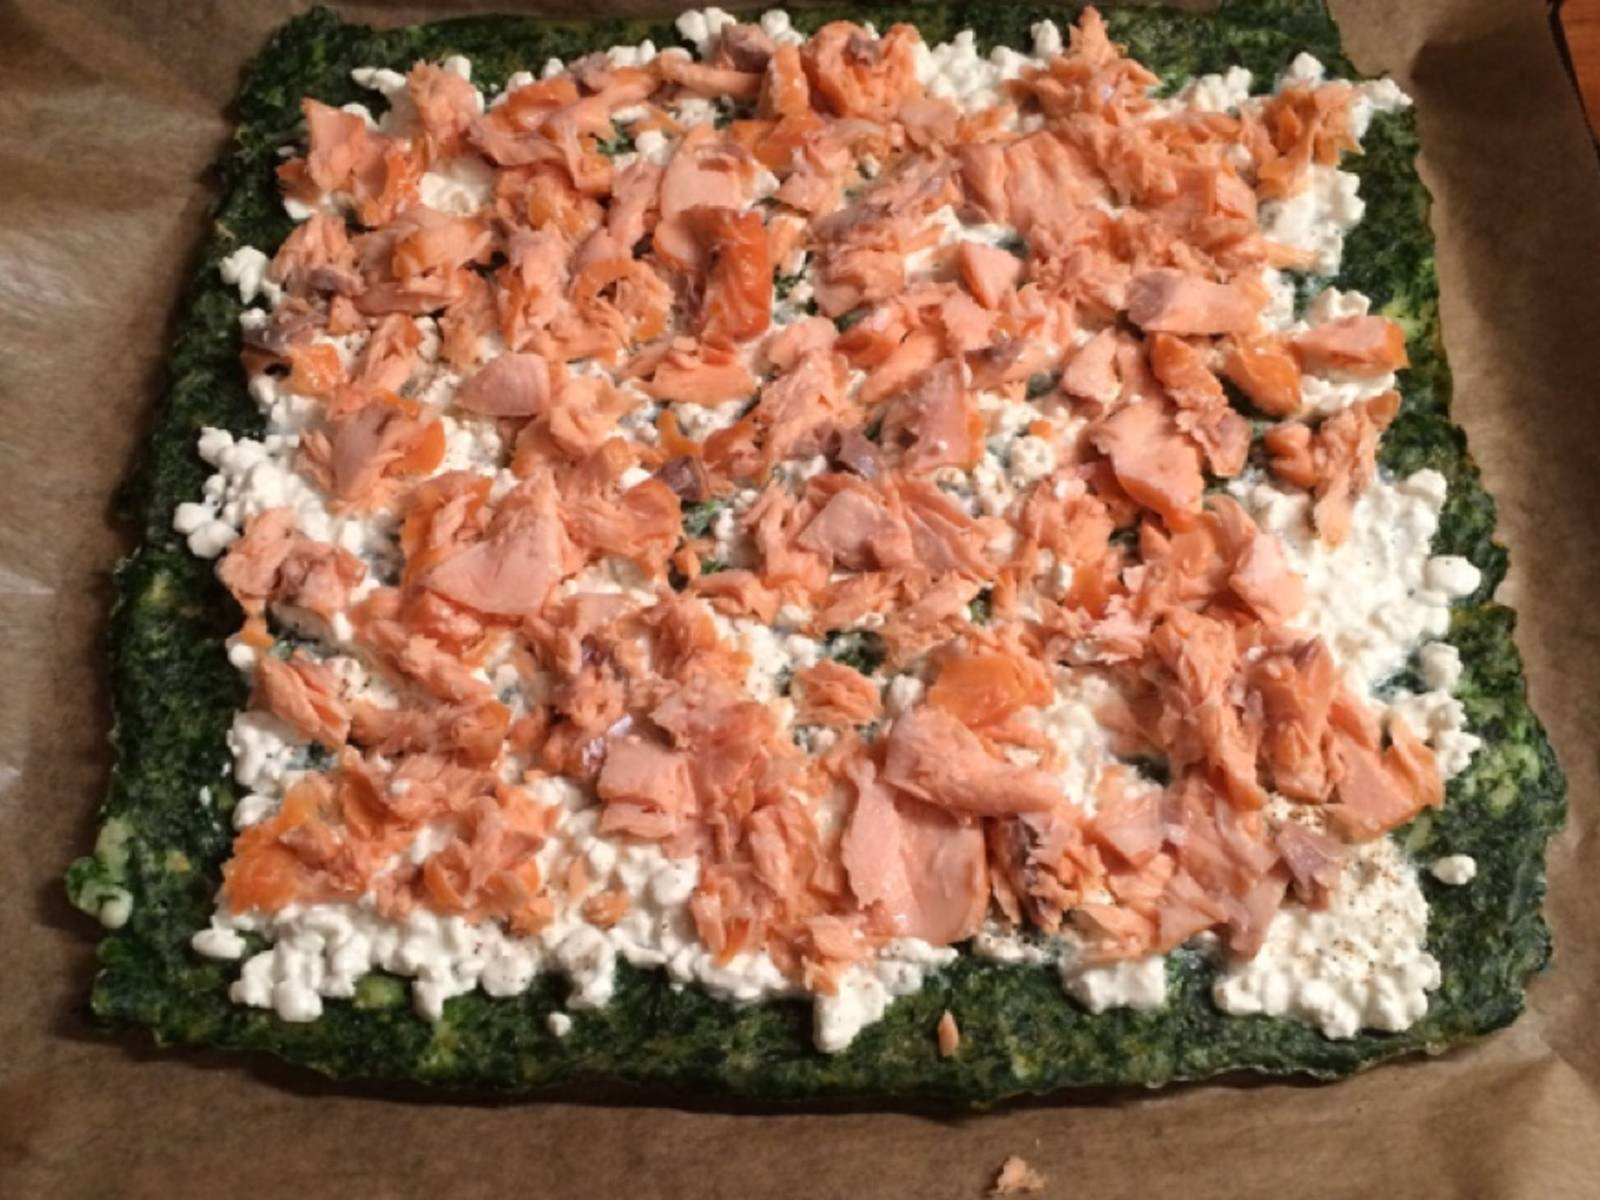 Spread the cottage cheese on top of the spinach layer and add an even layer of smoked salmon. Roll up gently into a log.